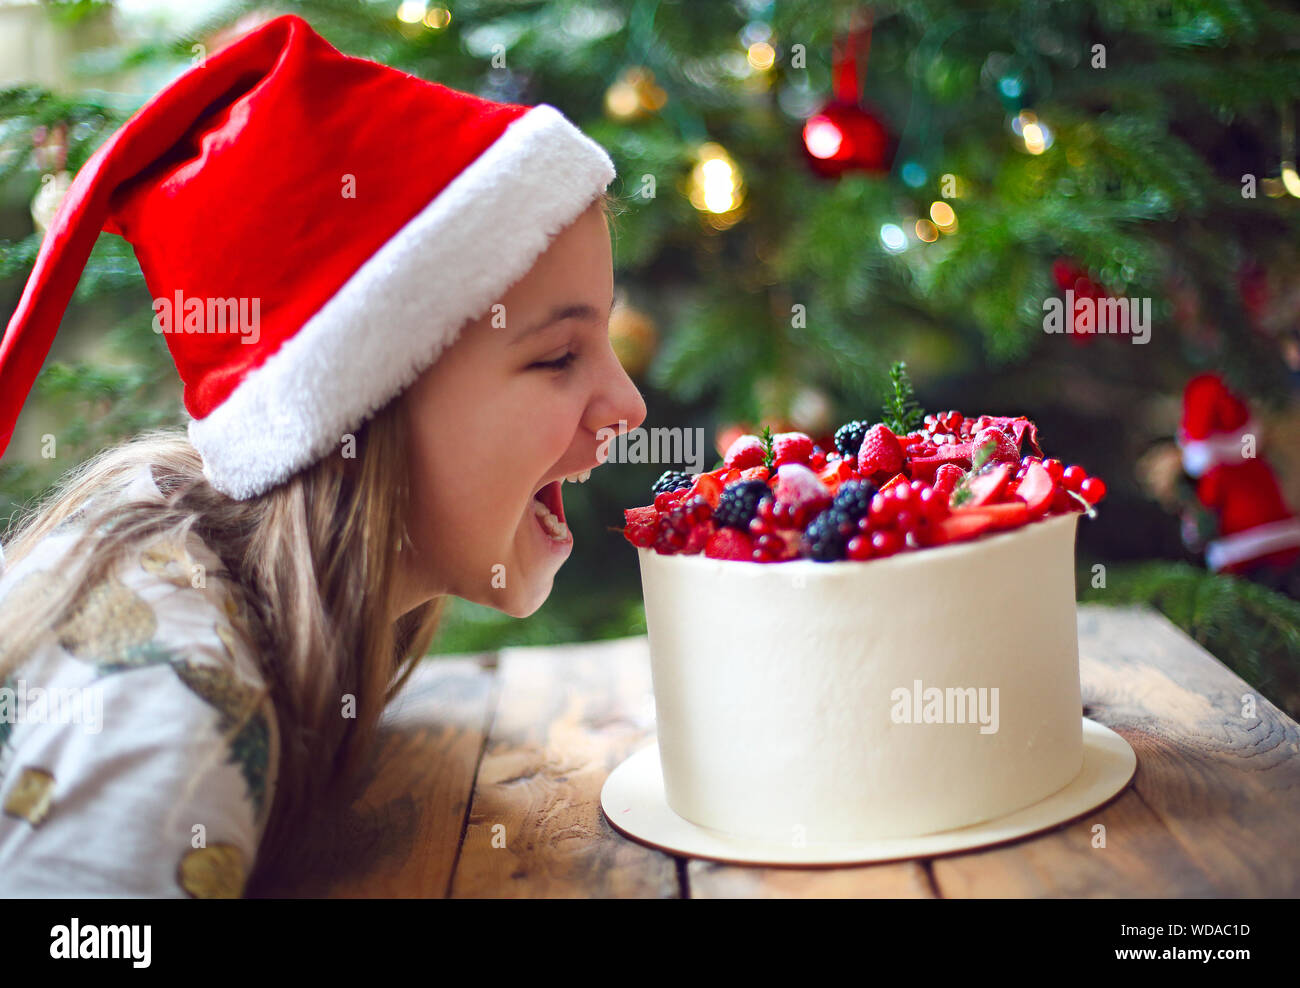 Christmas Cake decorated with berries and little girl by the Christmas tree Stock Photo